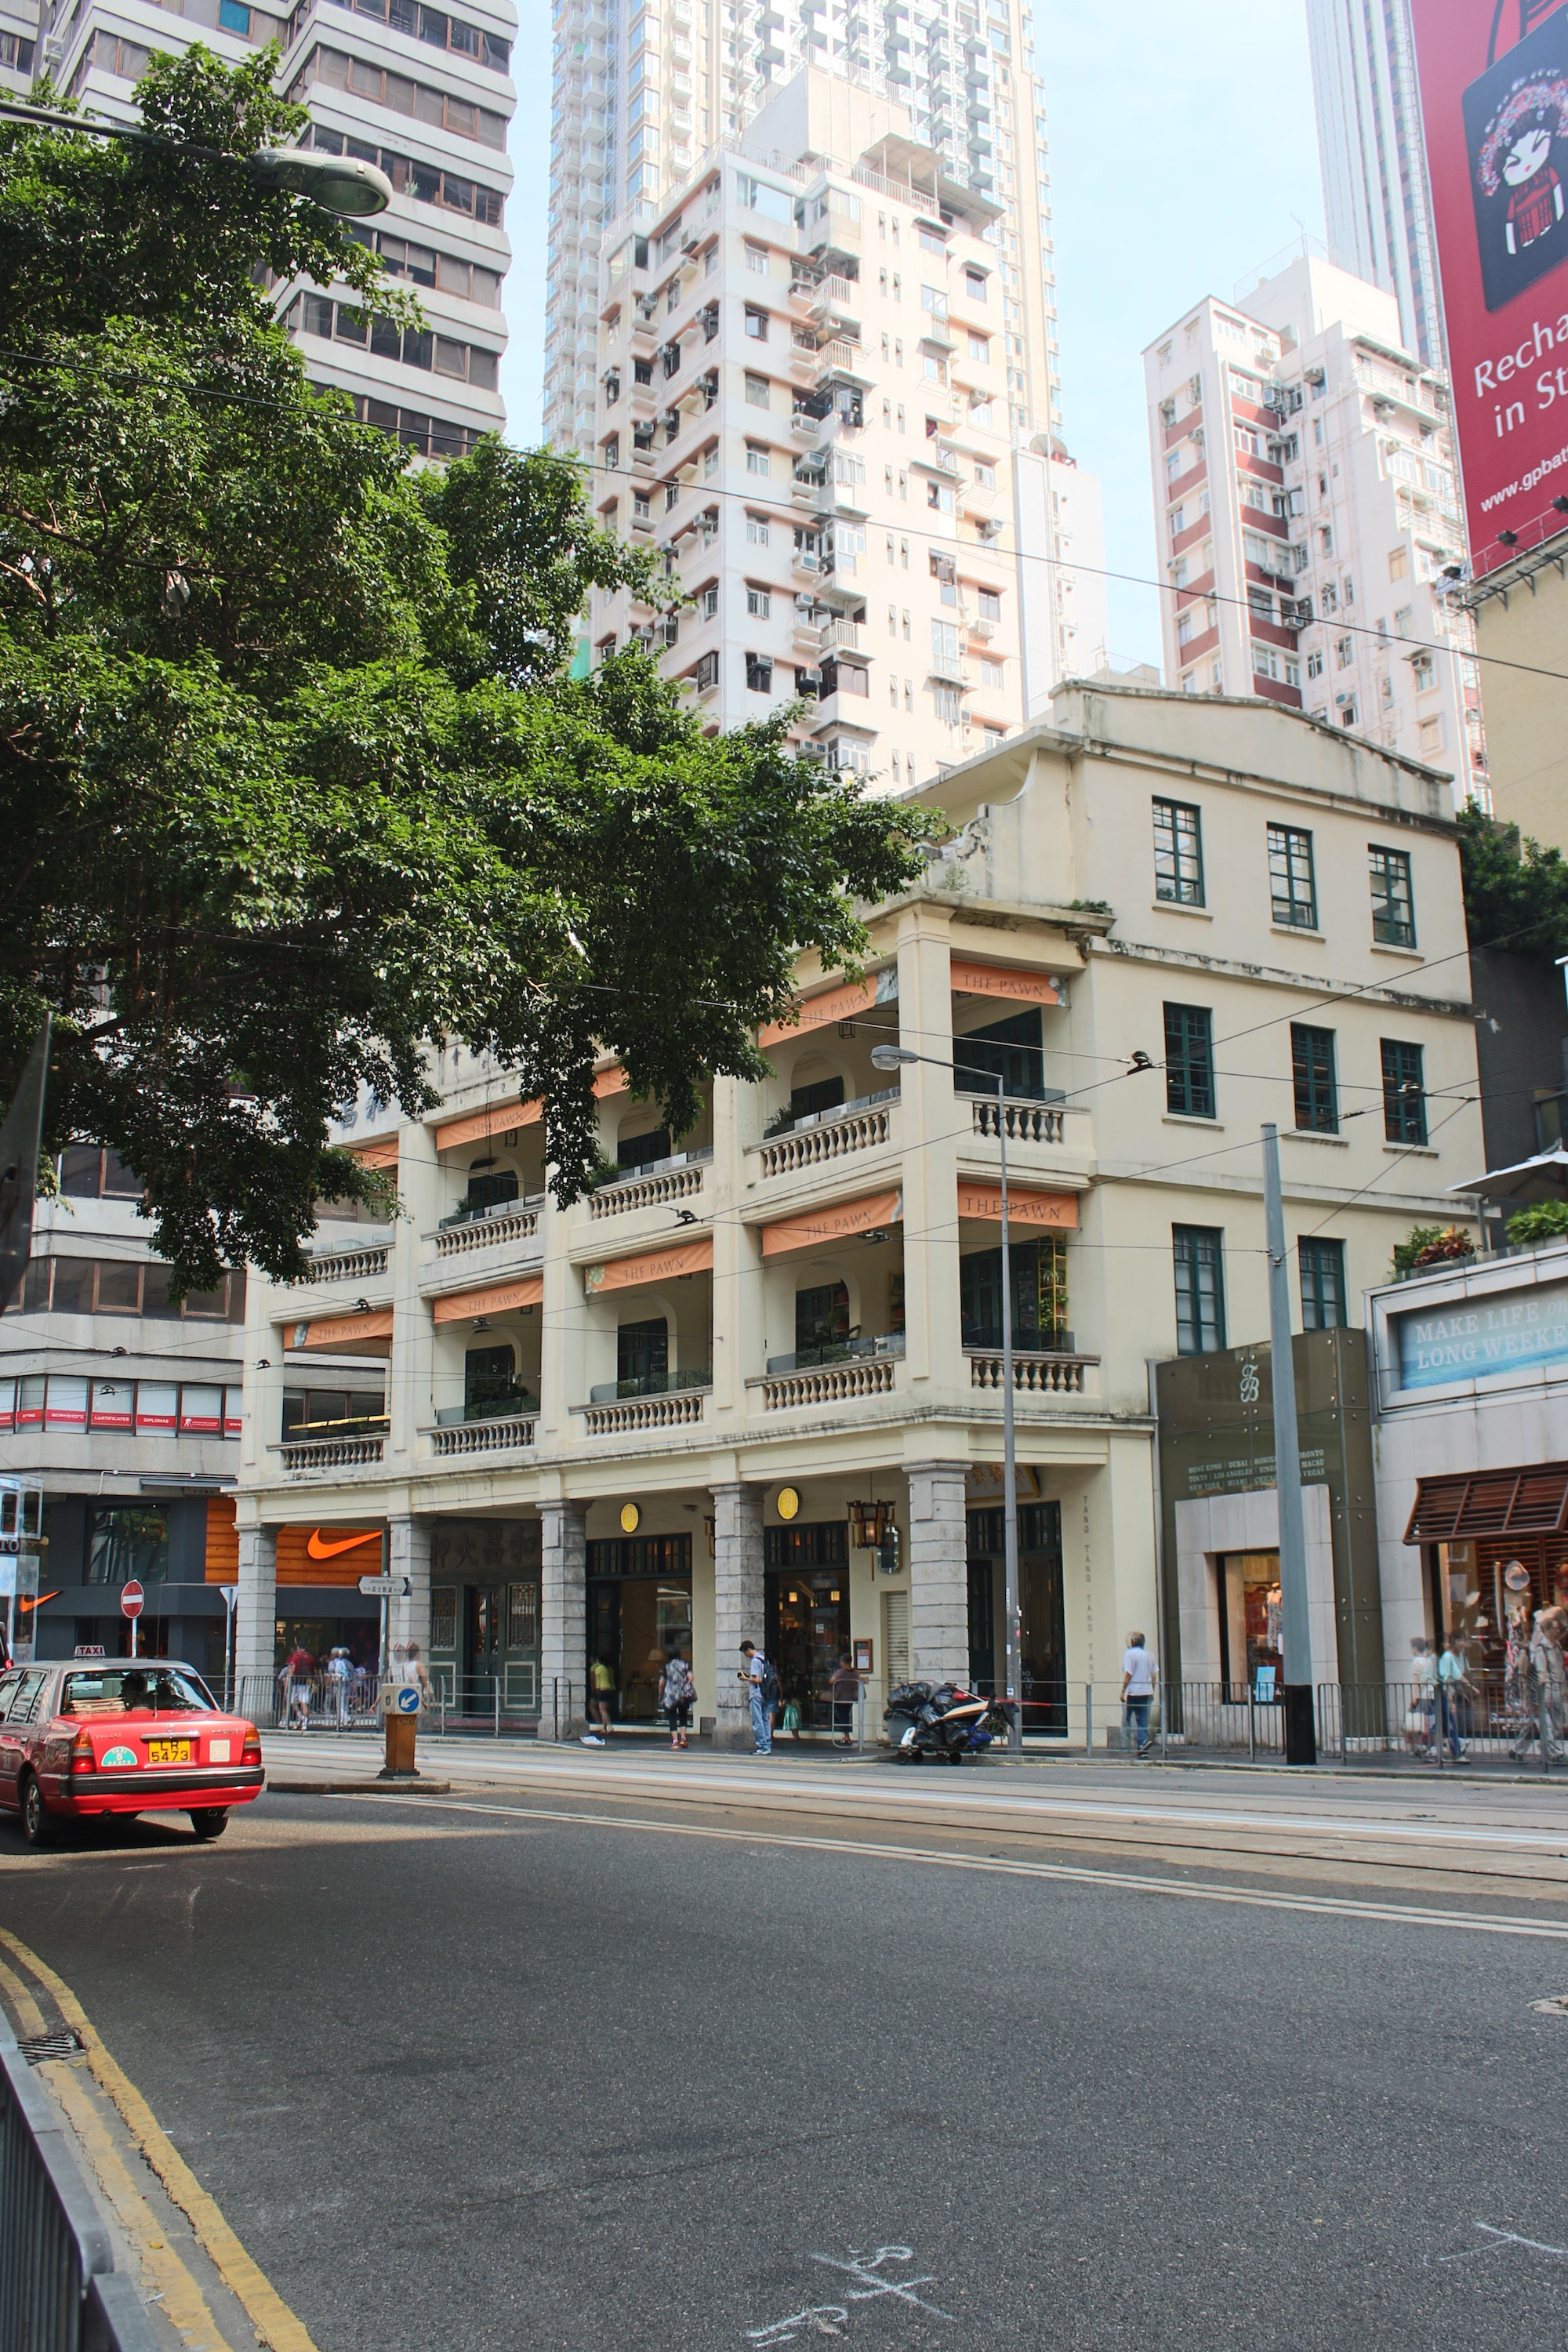 The Pawn, one of the most popular modern makeovers of historic buildings in Hong Kong.